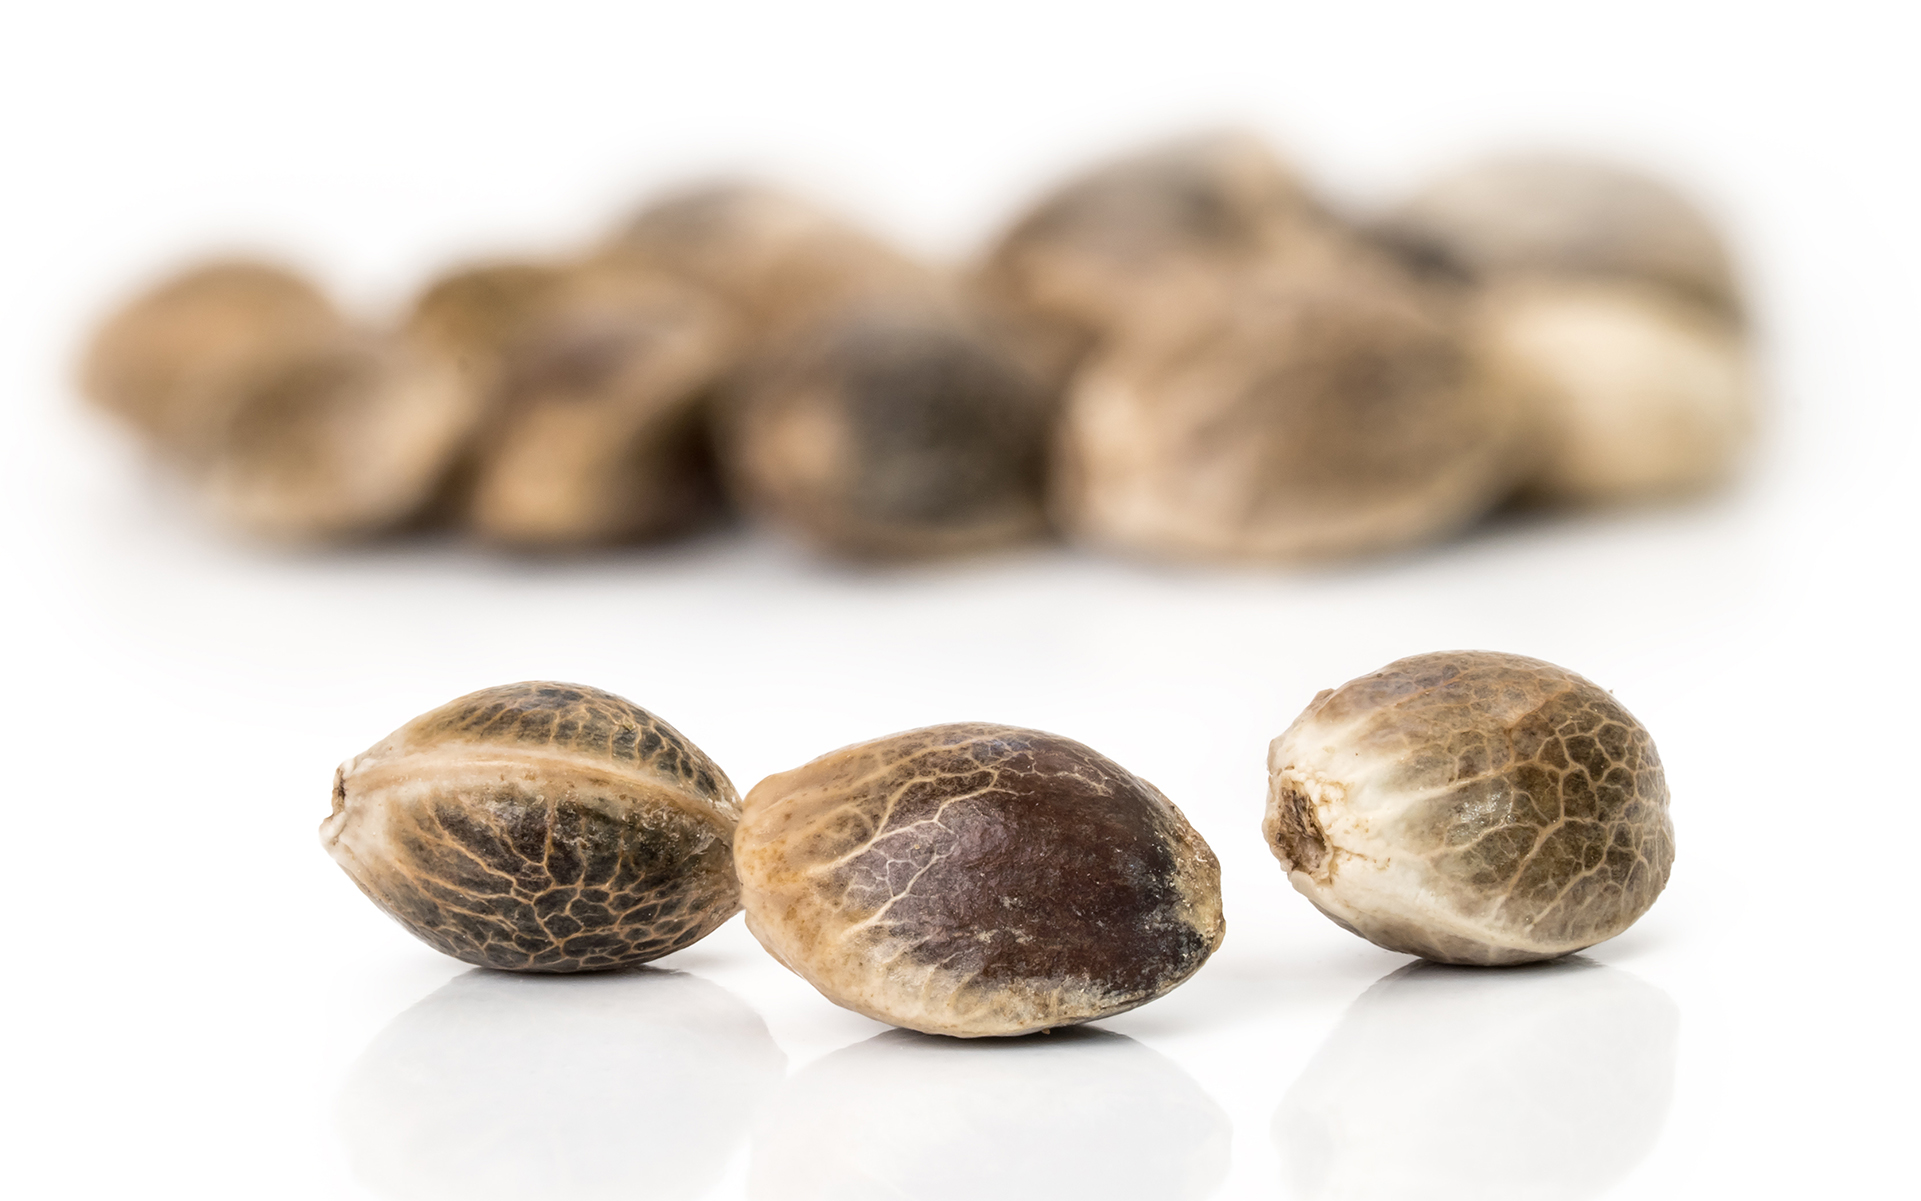 how to germinate cannabis seeds leafly